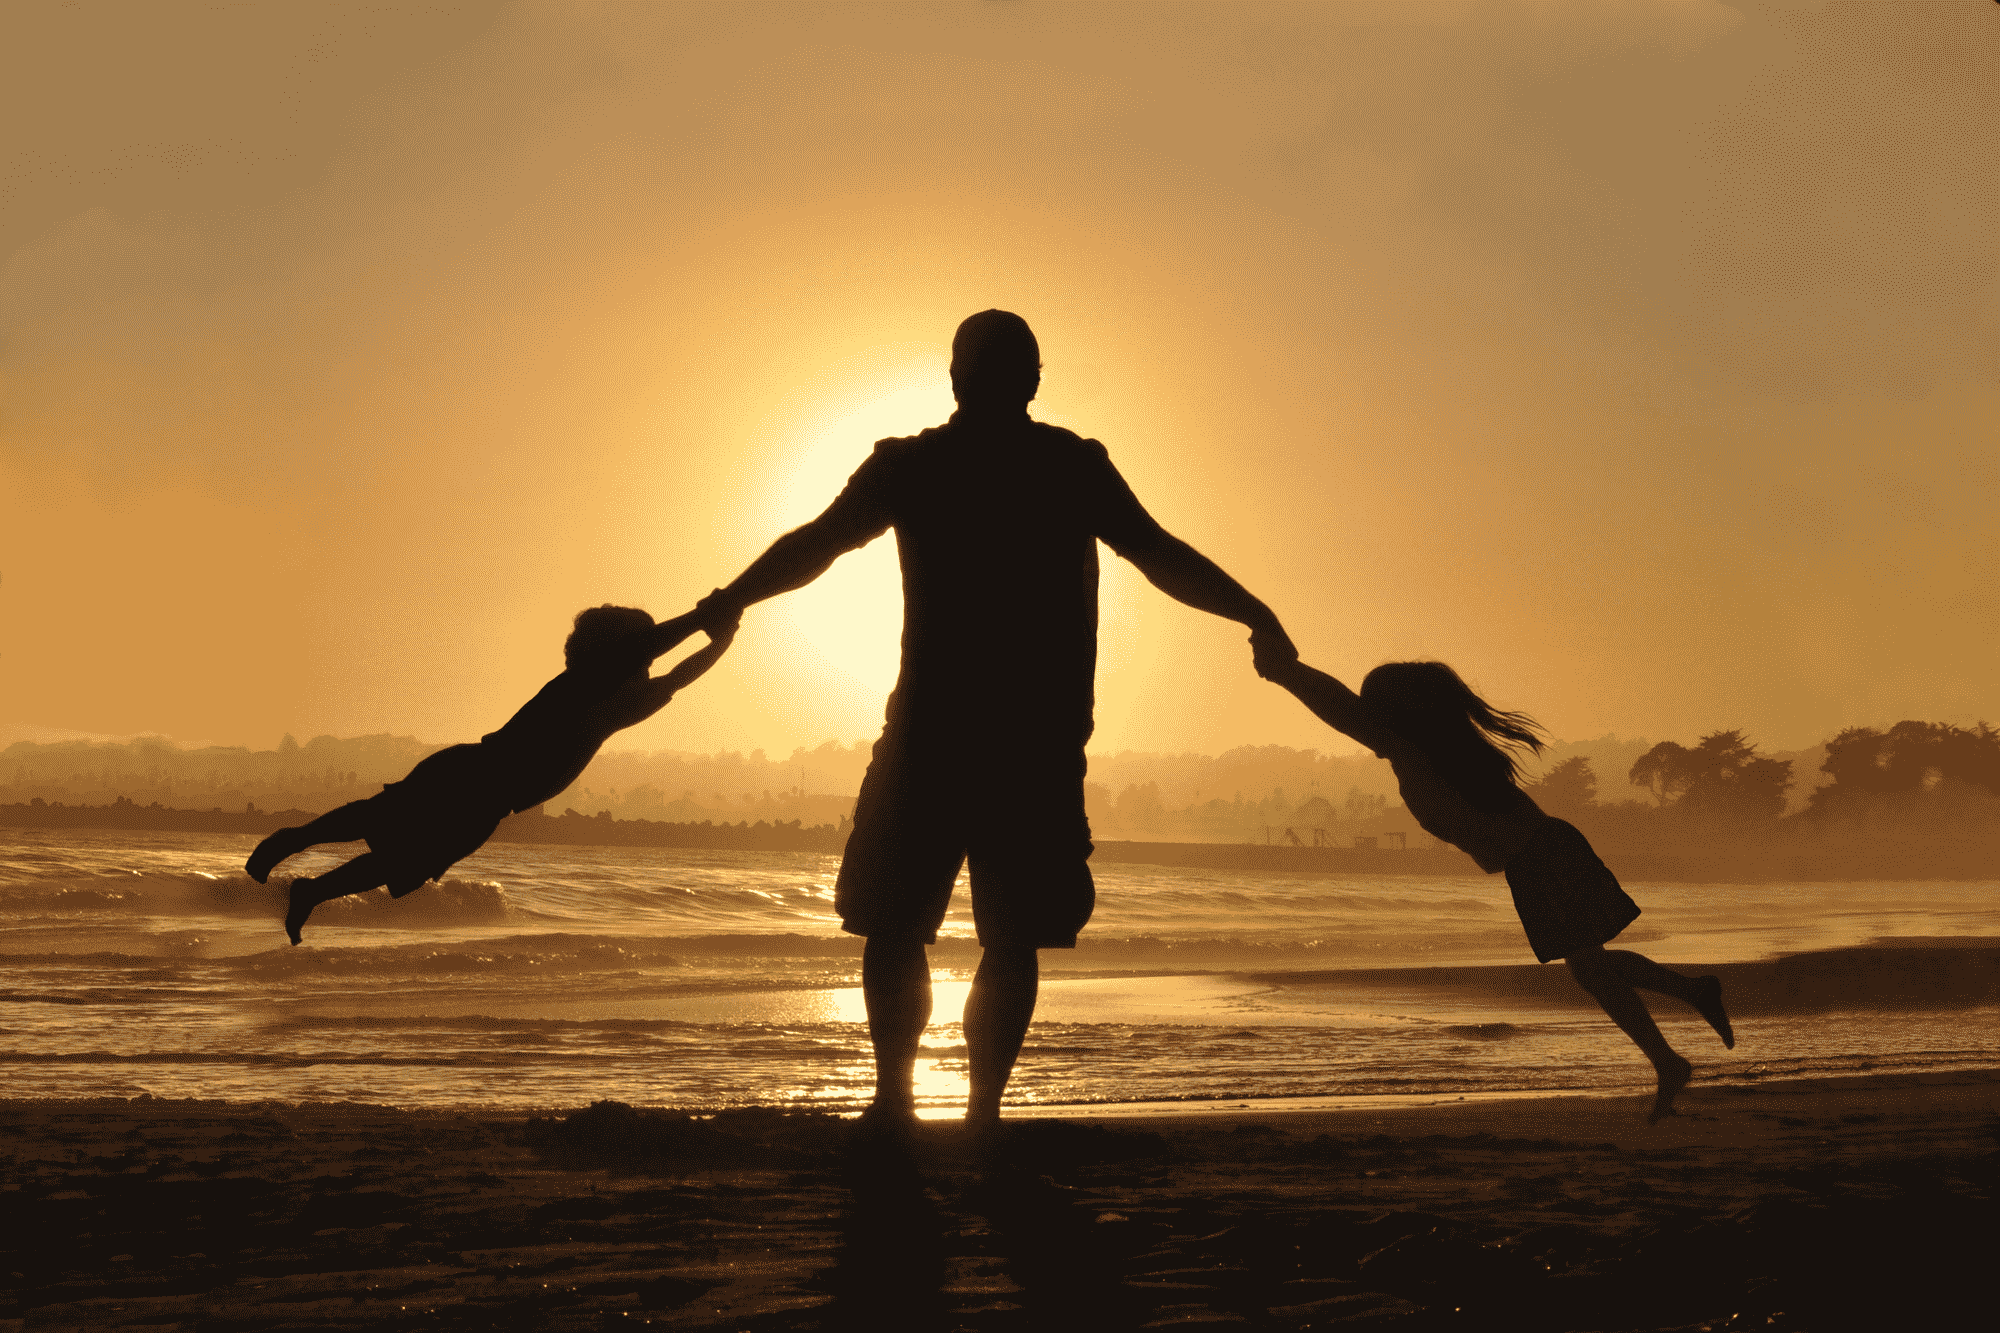 How to Use Influencers for Father's Day